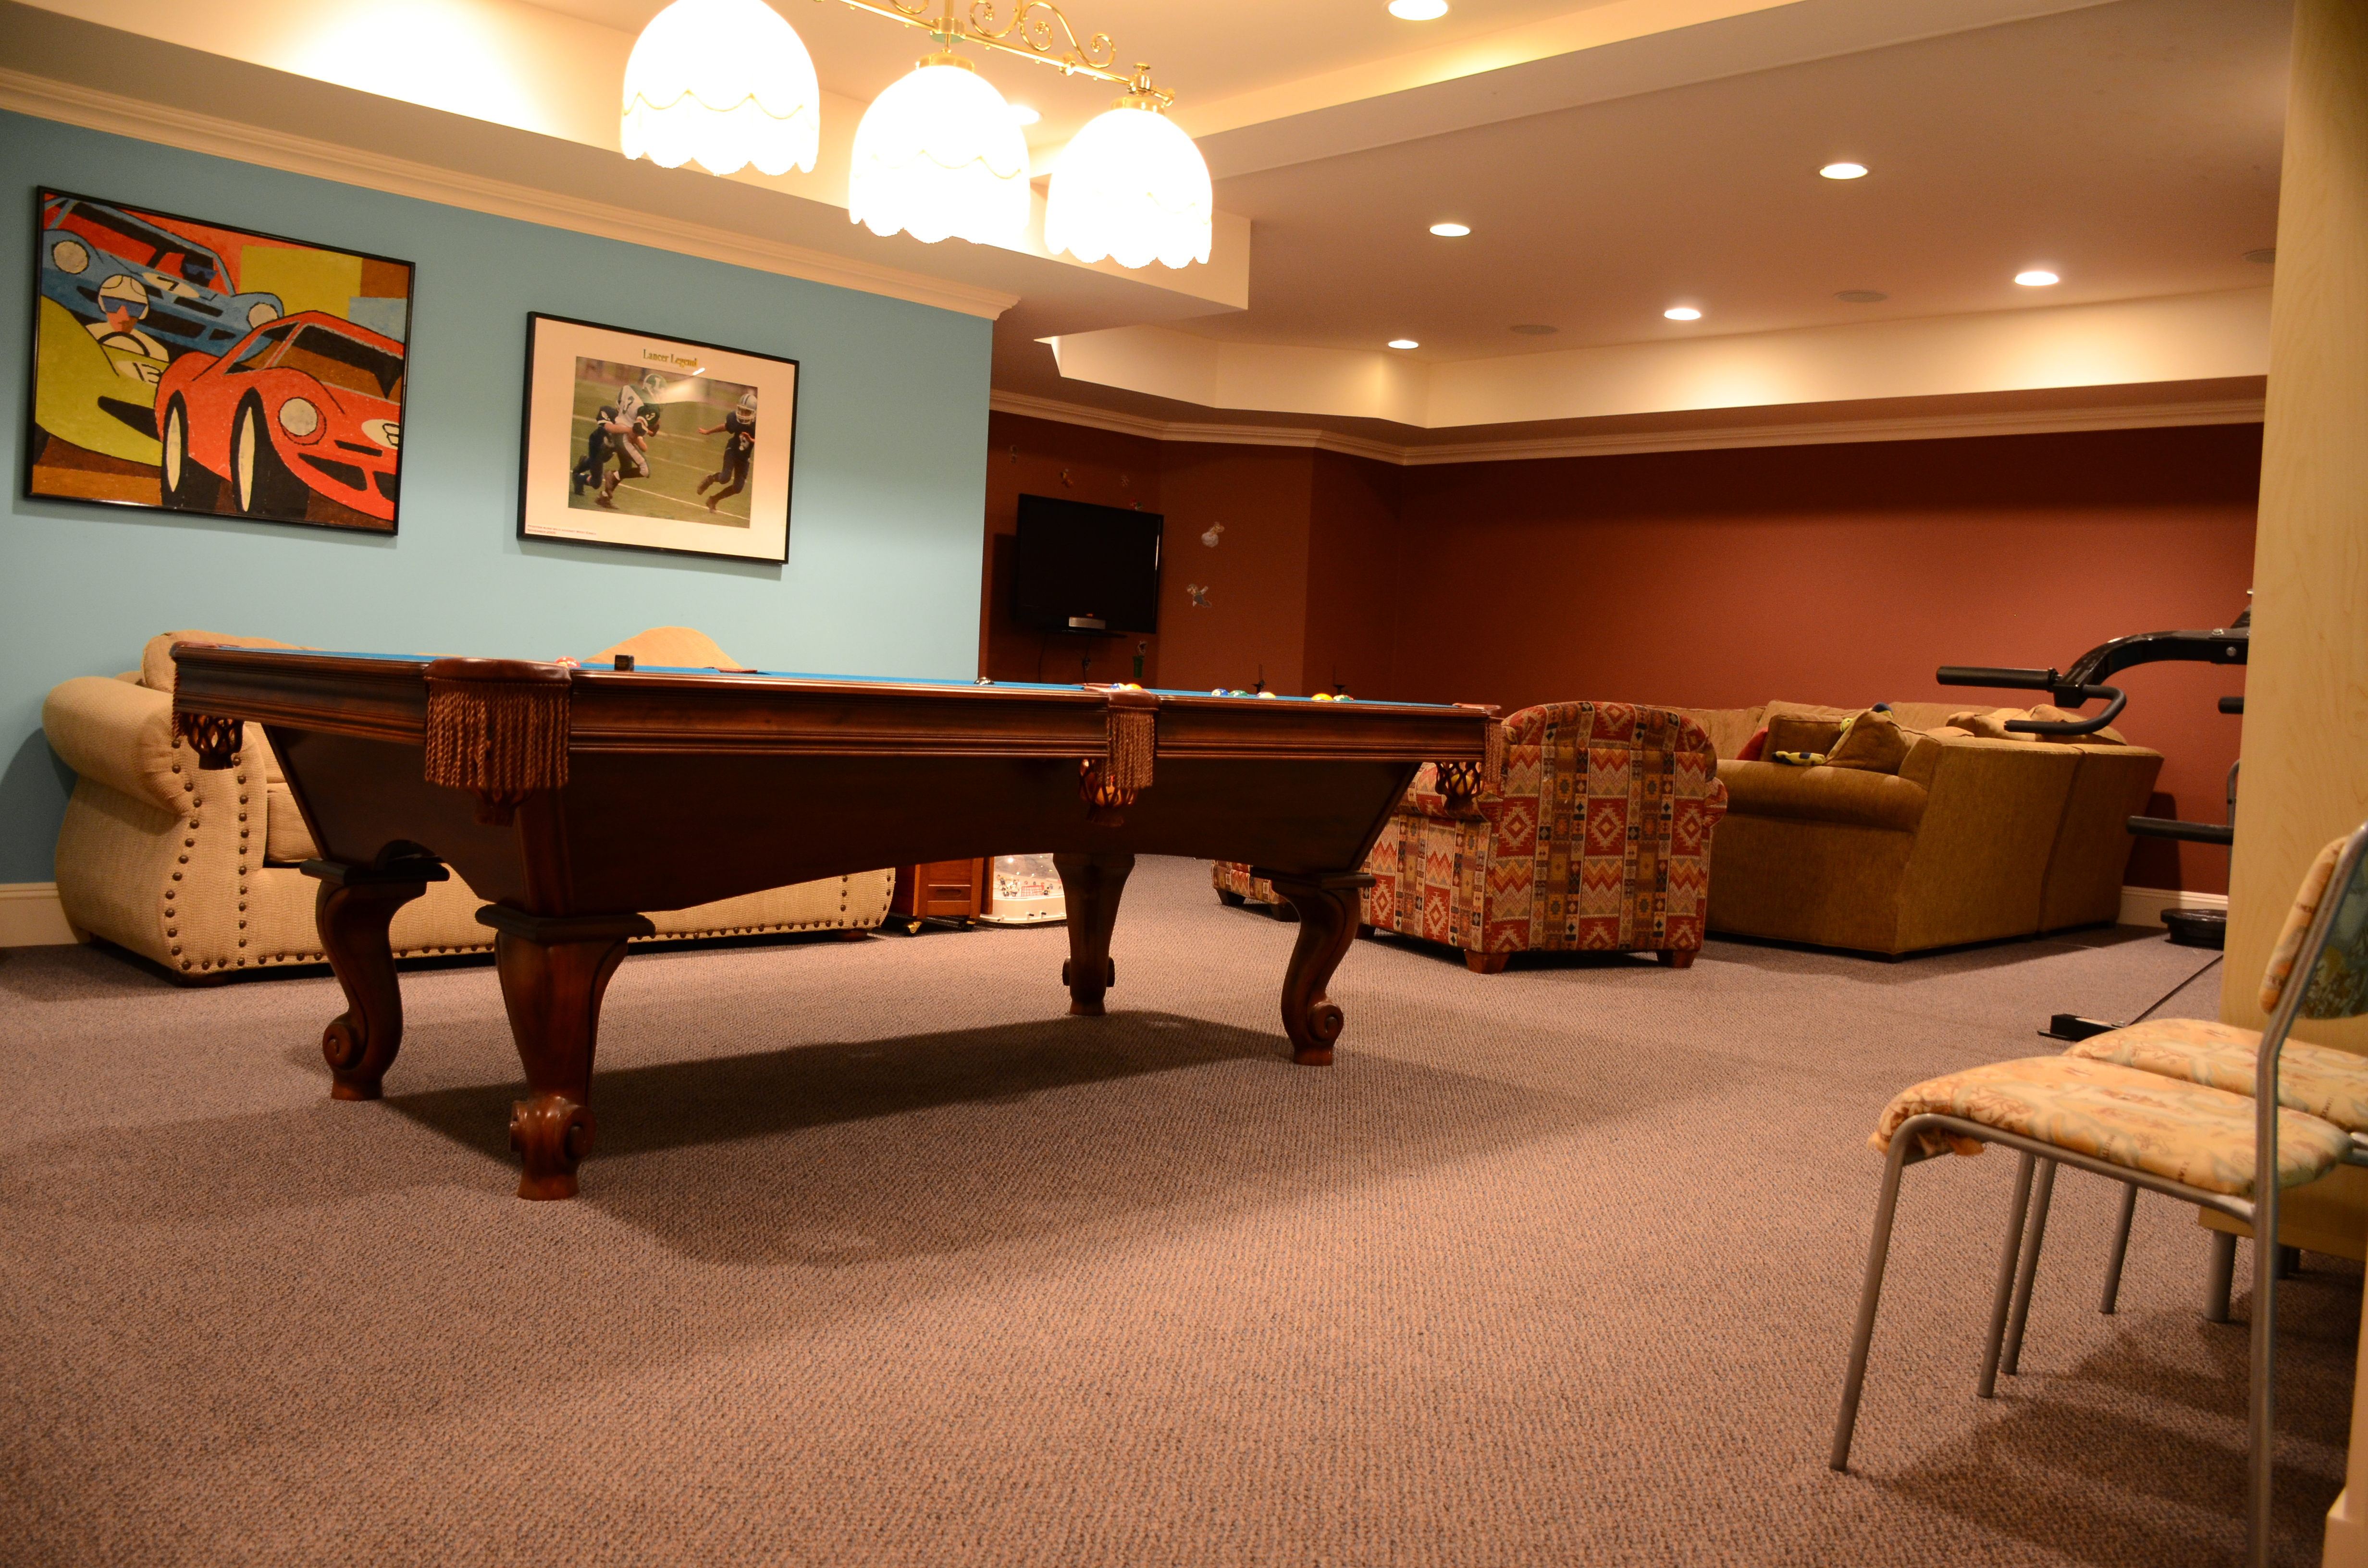 game-room-re-carpeted-following-flood